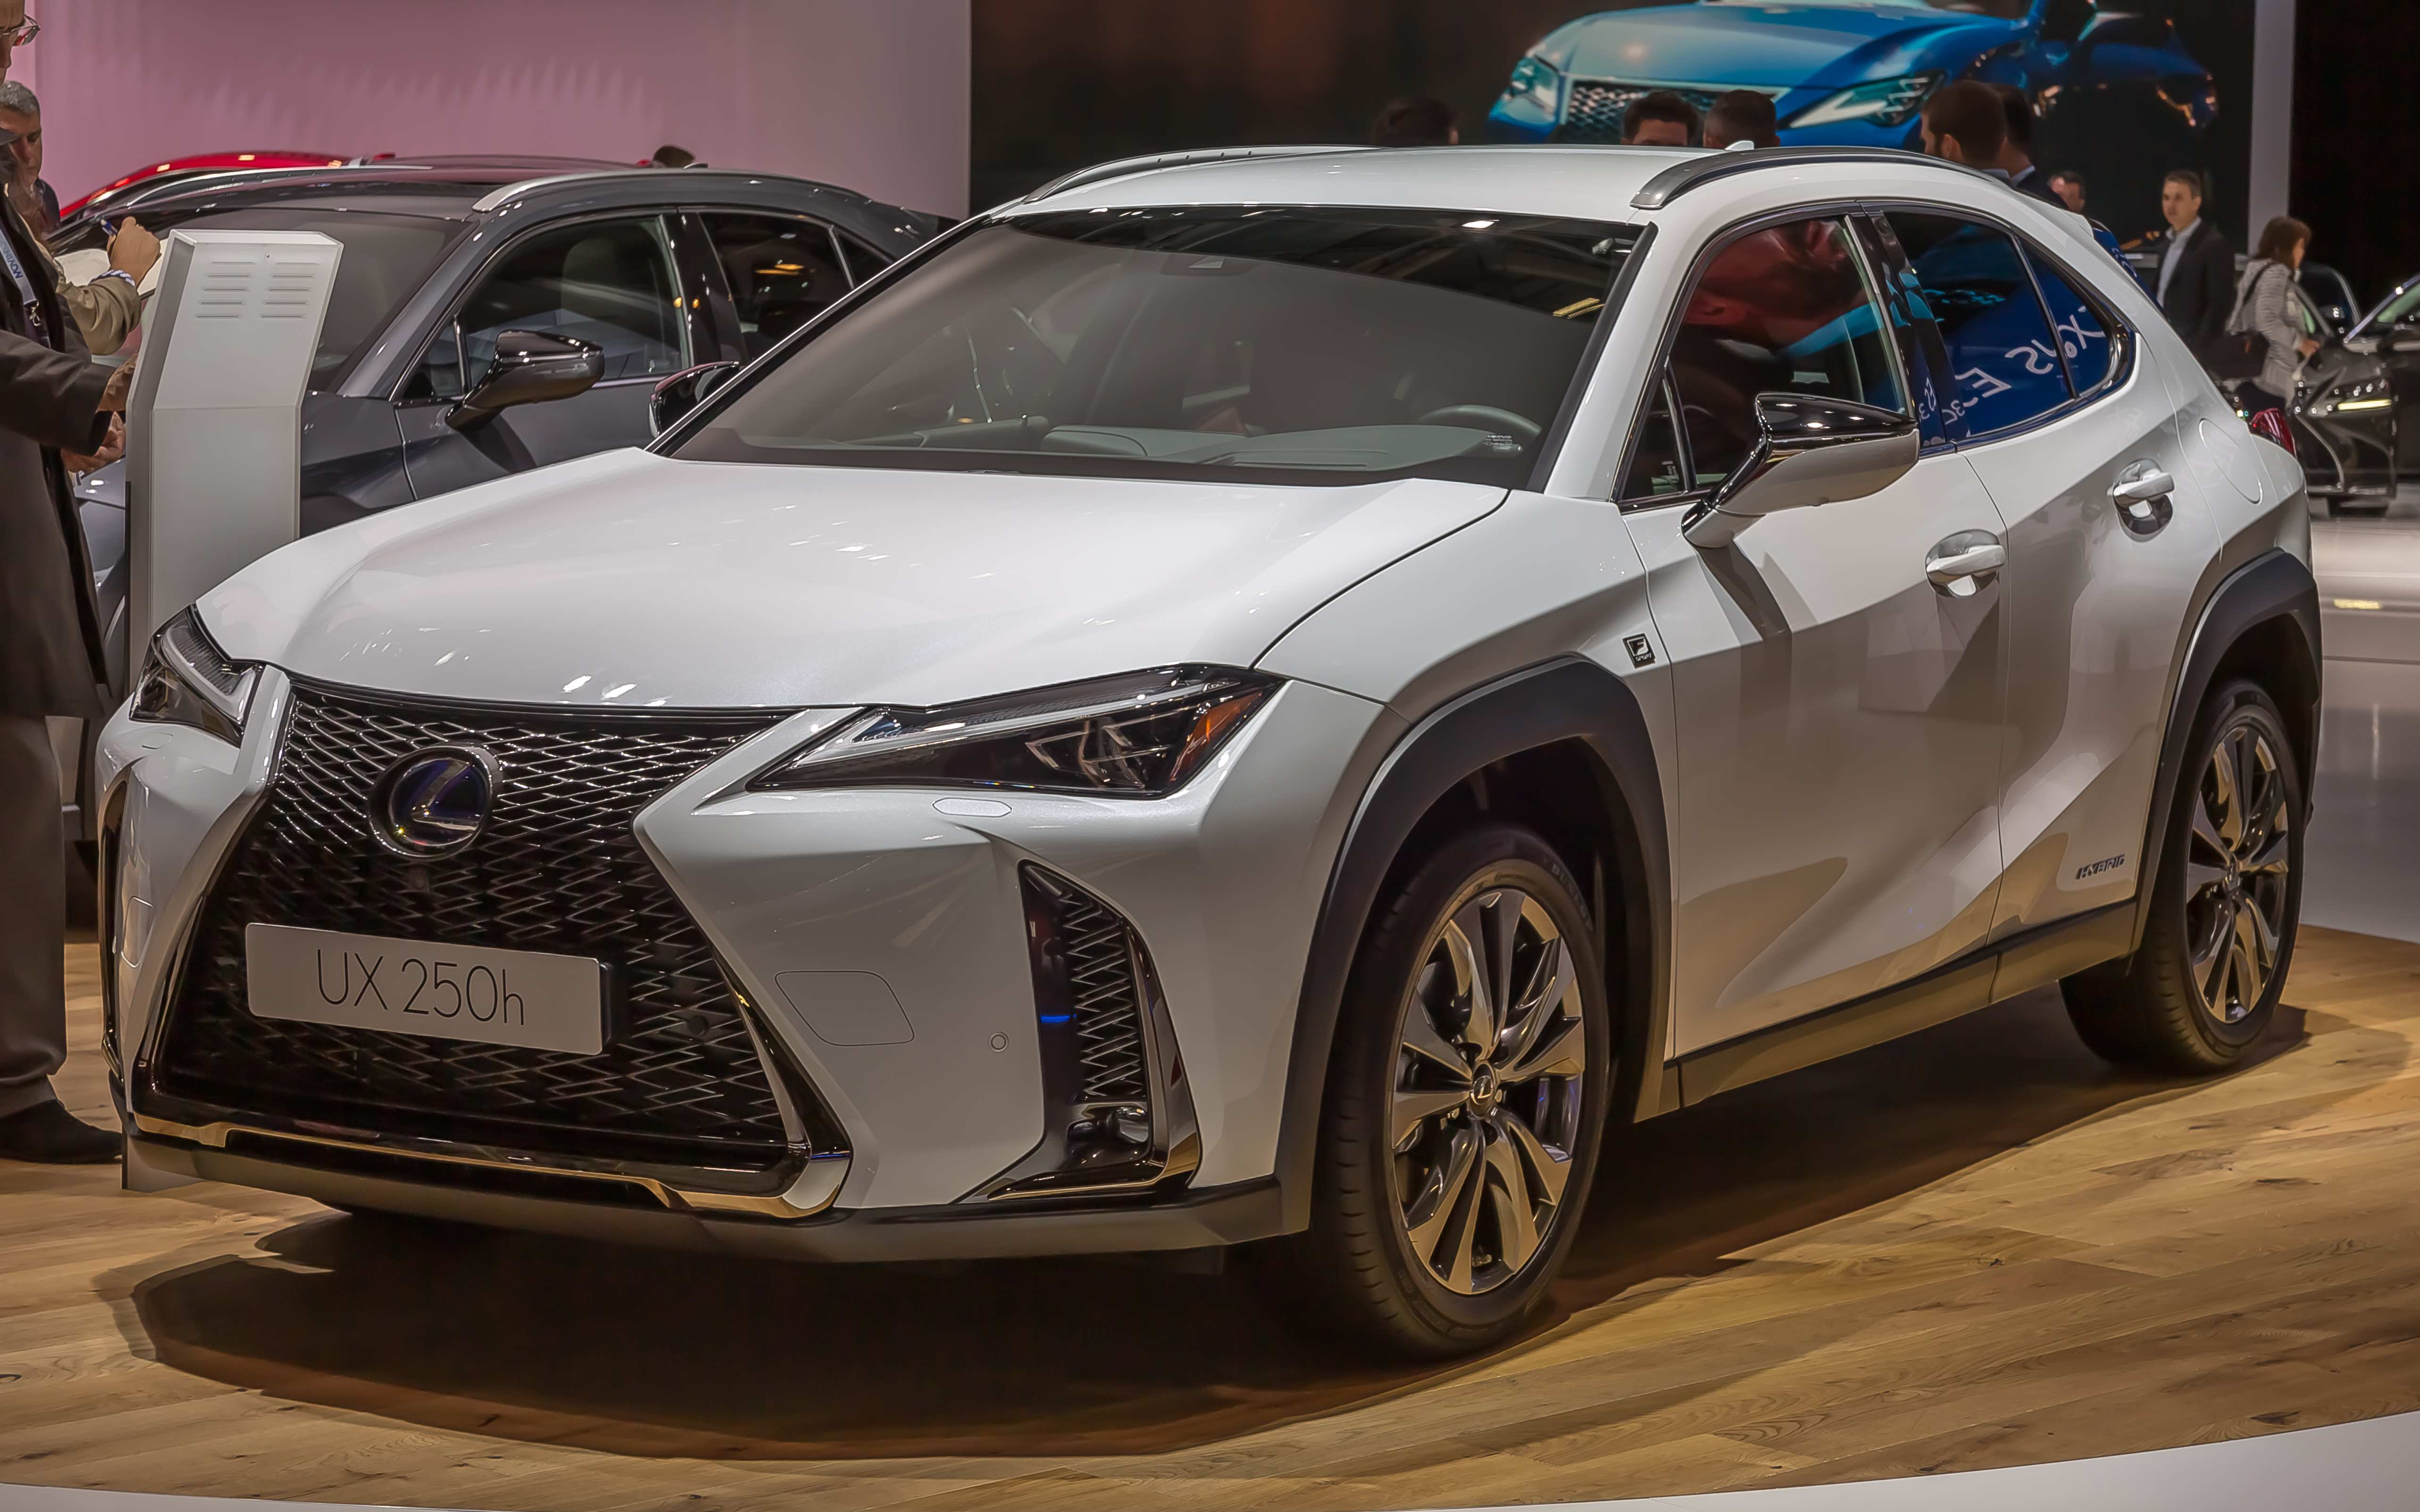 95 The When Do 2019 Lexus Come Out Engine